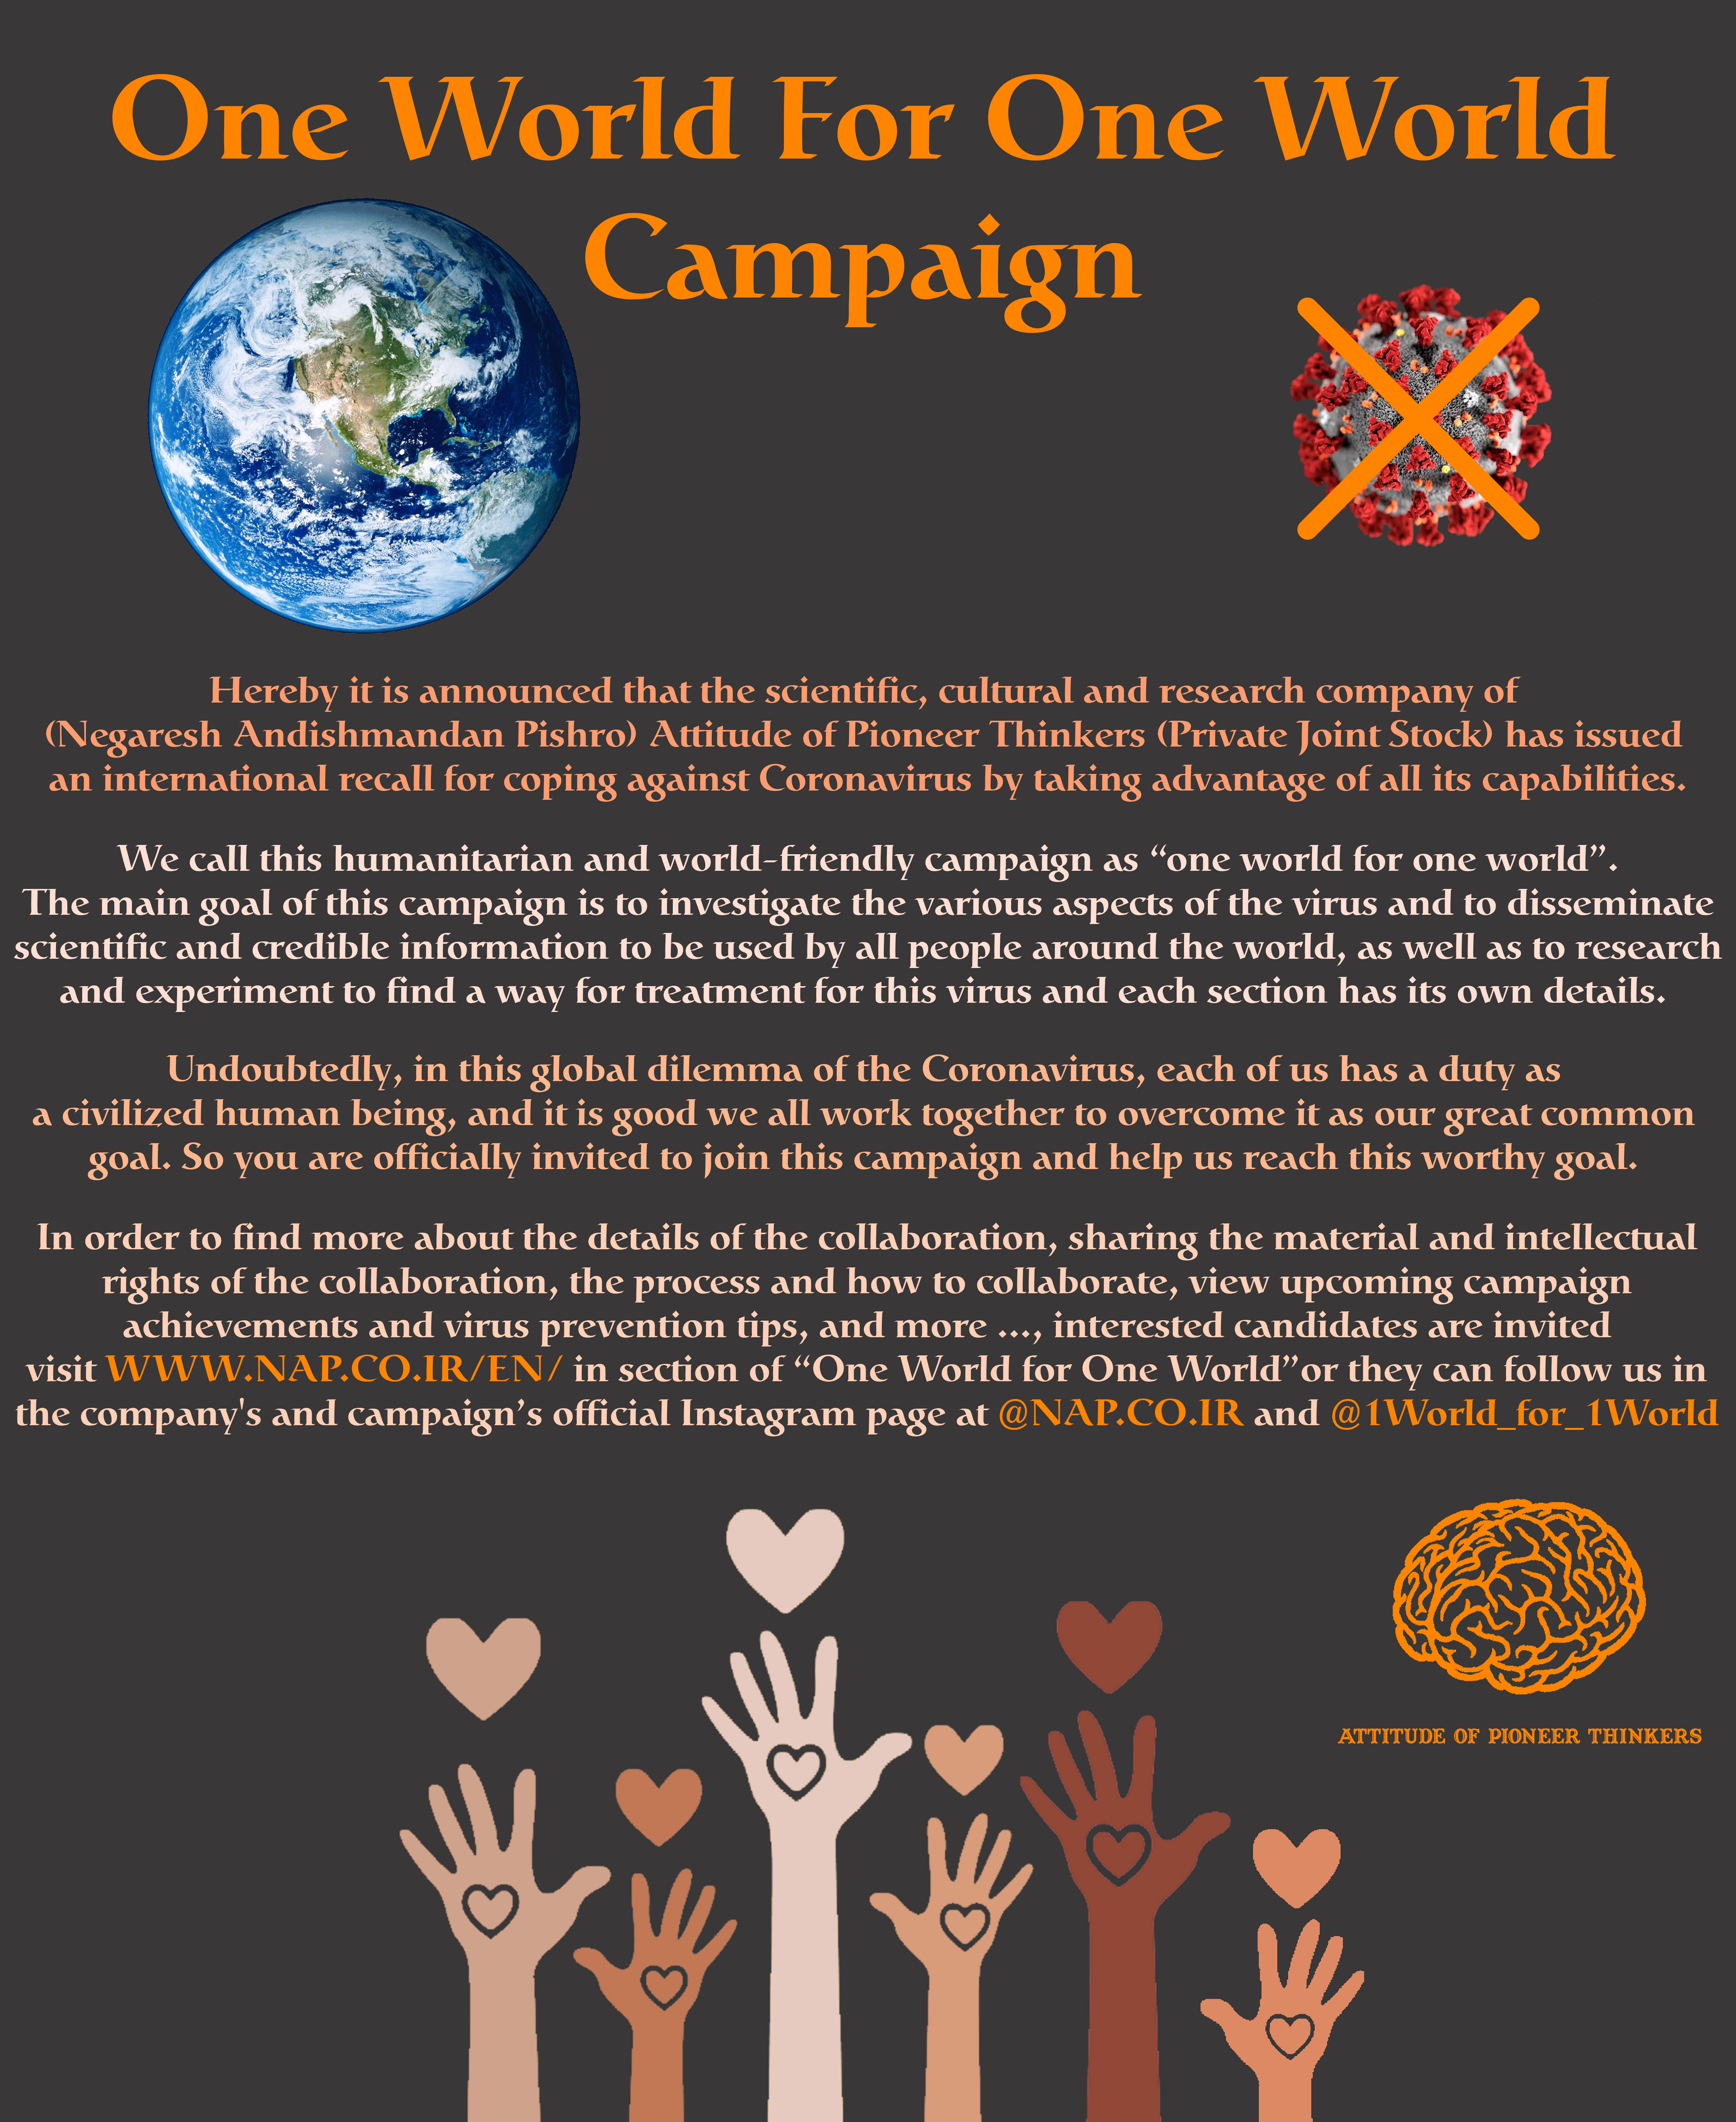 The Campaign of Battling with Coronavirus (One World For One World Campaign) Poster